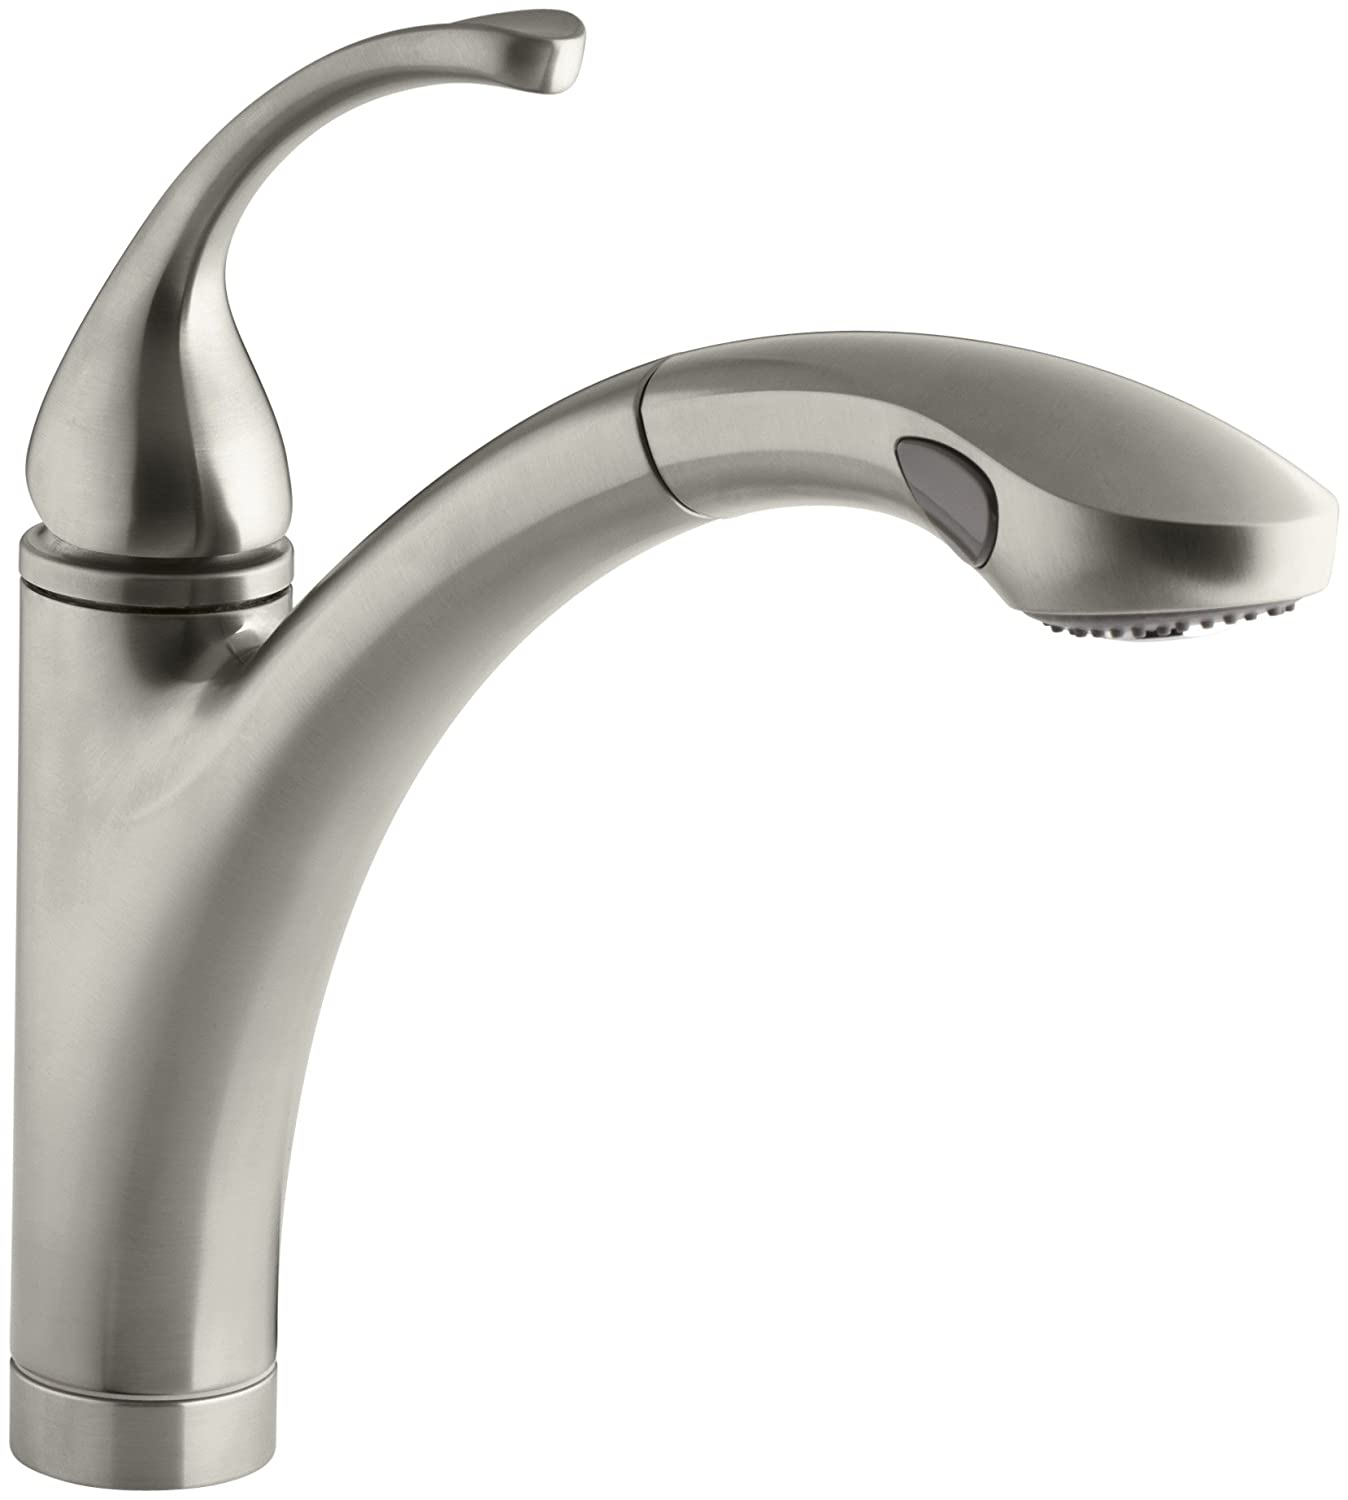 KOHLER K 10433 BN Forte Single Control Pullout Kitchen Sink Faucet With  Color Matched Sprayhead And Lever Handle, Vibrant Brushed Nickel   Touch On  Kitchen ...